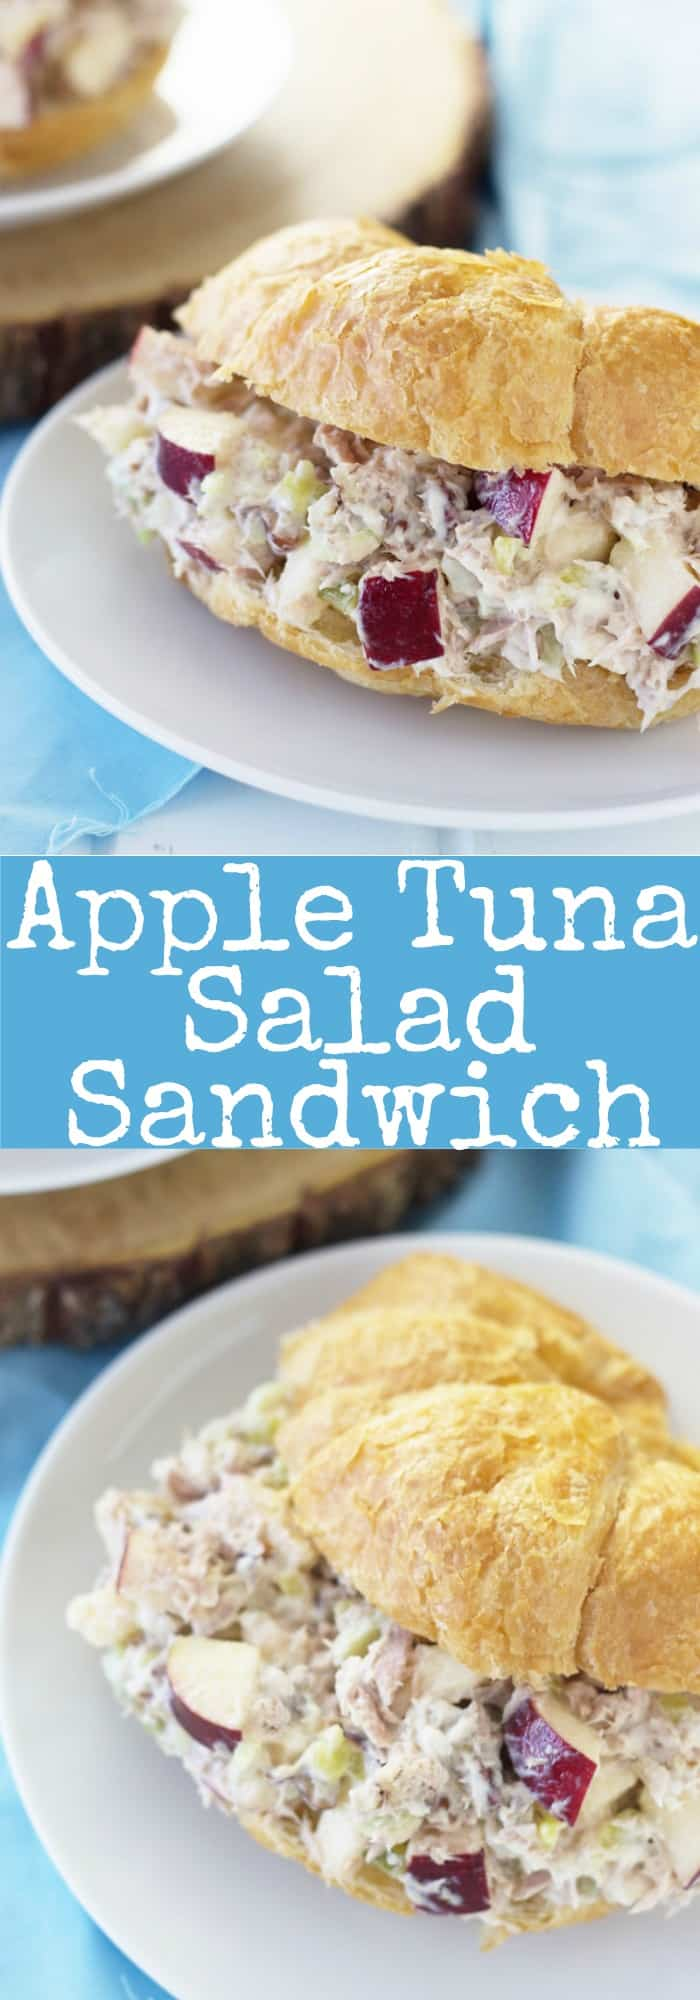 Apple Tuna Salad Sandwiches are a quick and simple lunch that requires no cooking!   www.countrysidecravings.com